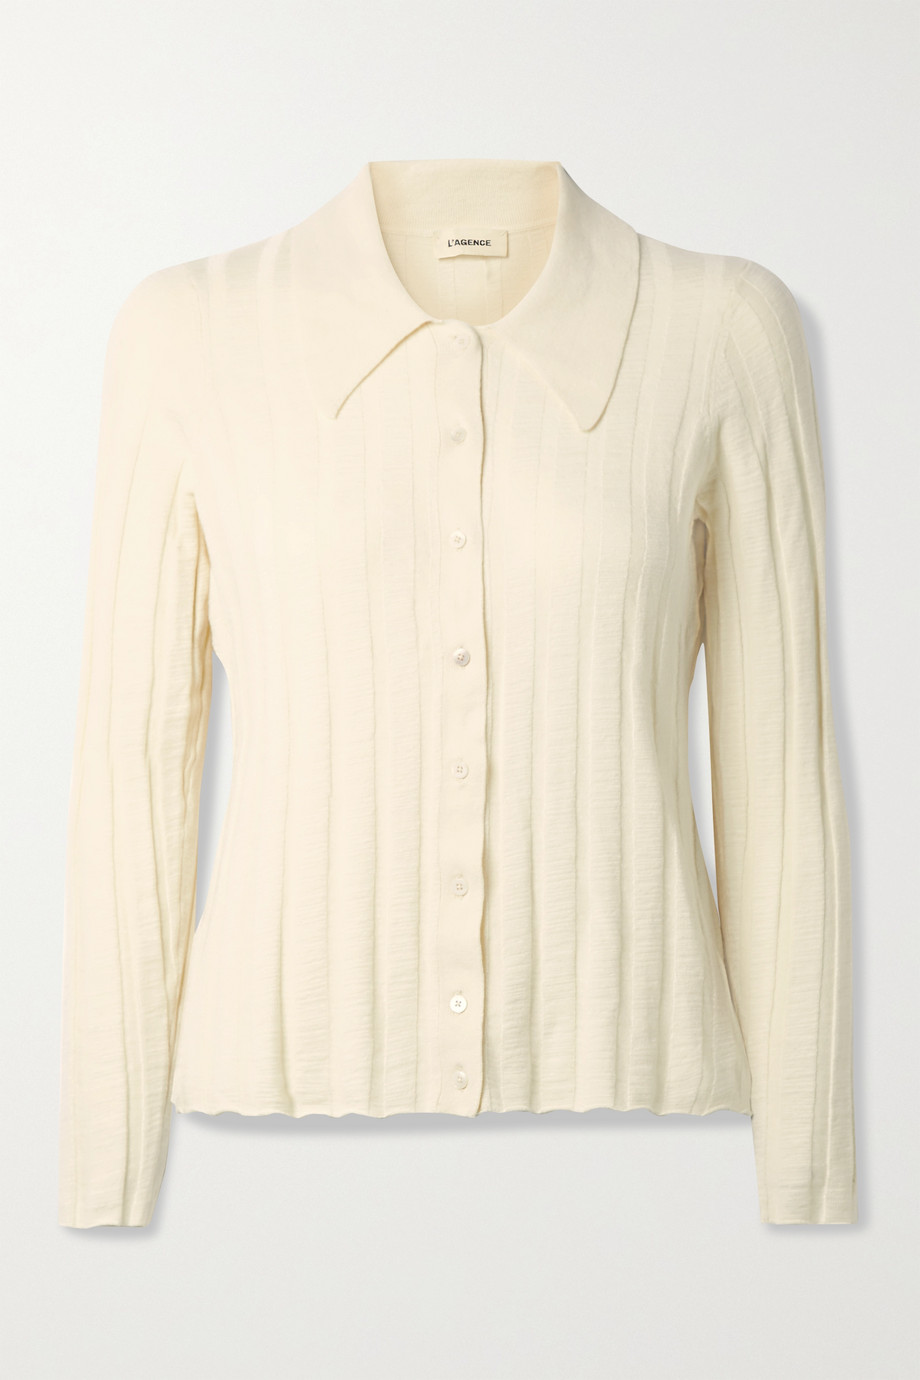 L'AGENCE Naya ribbed-knit cardigan